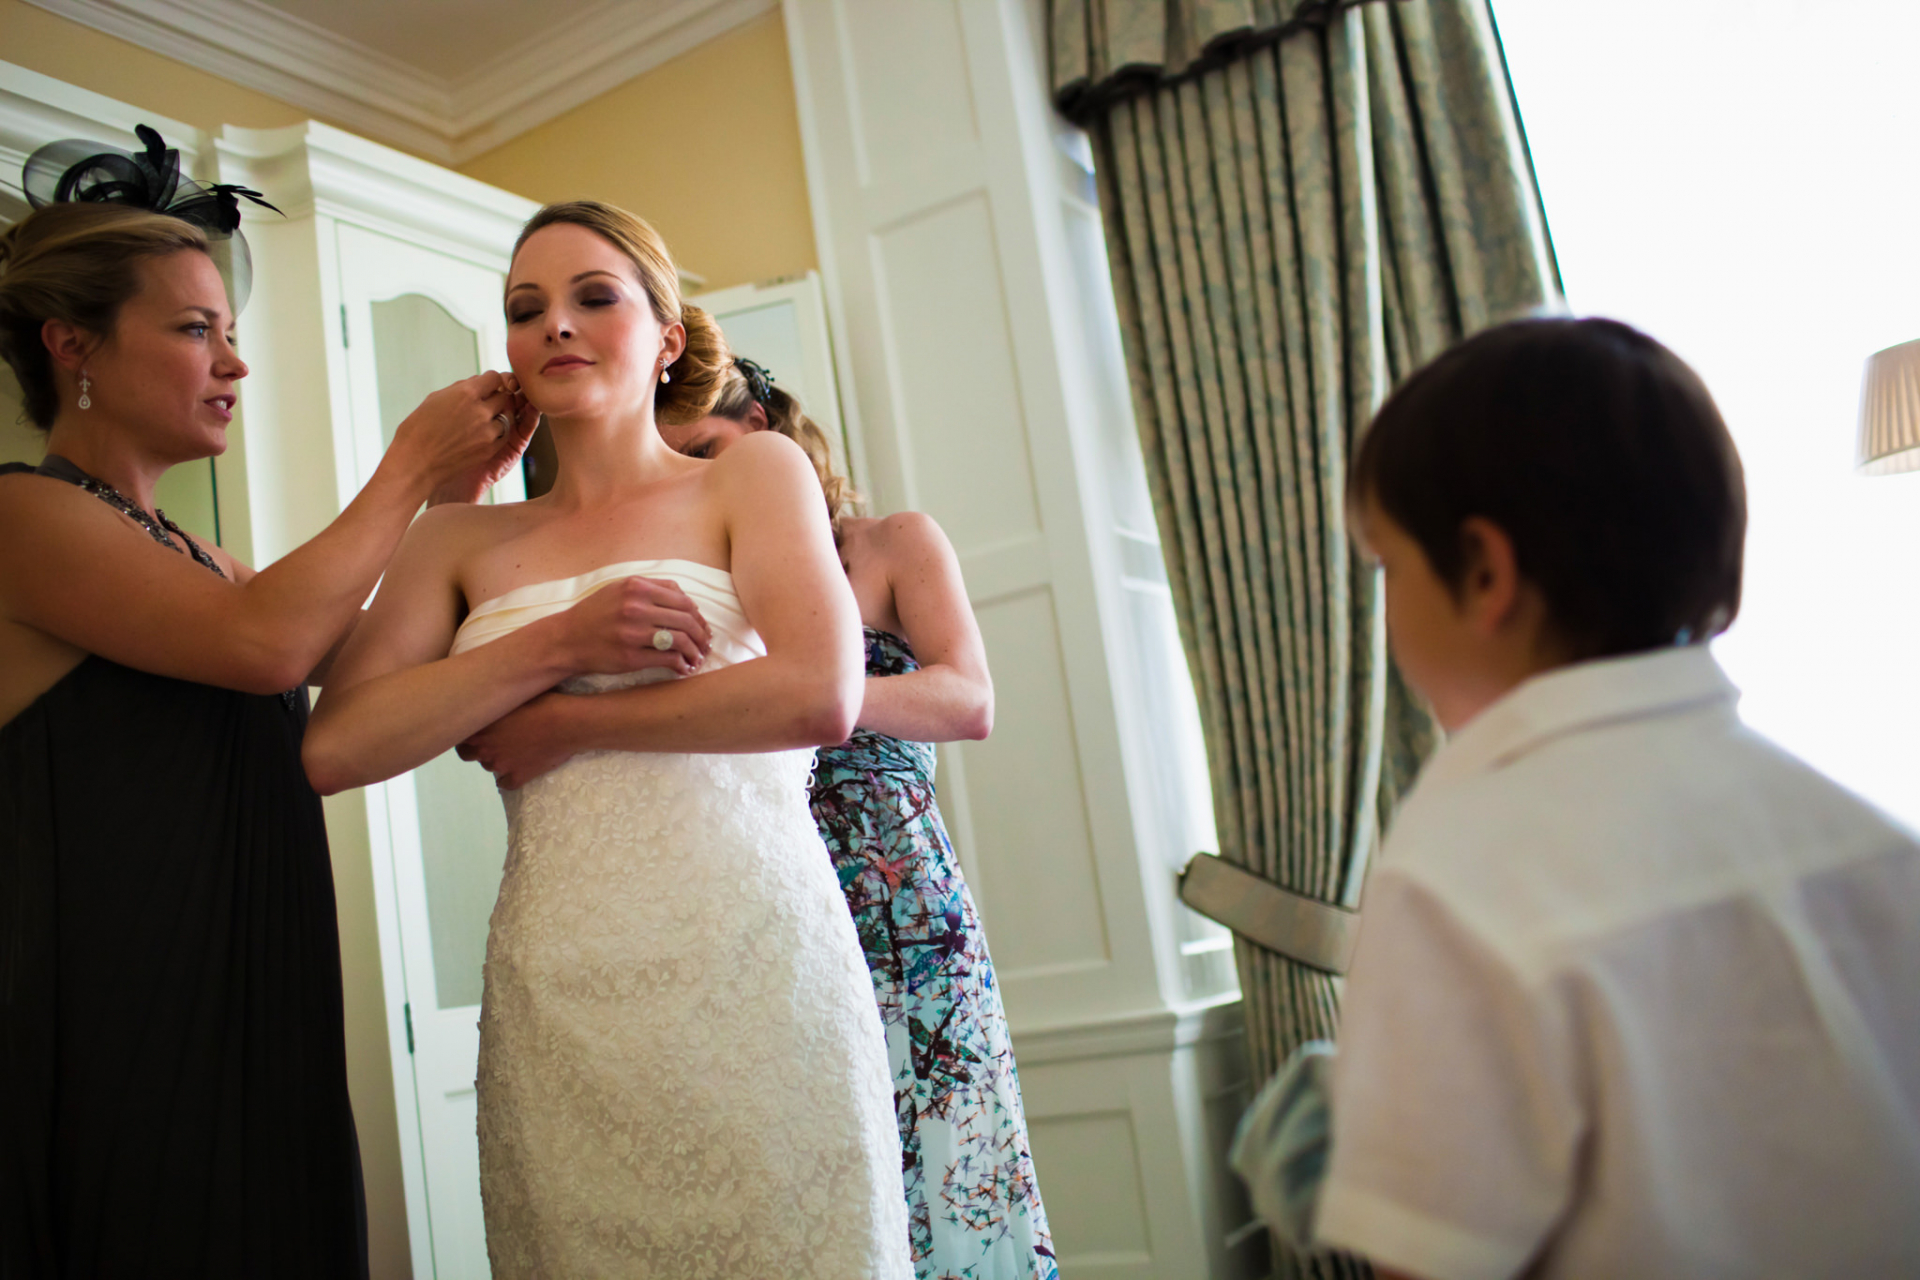 London Elopement Image of the Bride Getting Ready | Before the ceremony, two women help the bride get ready